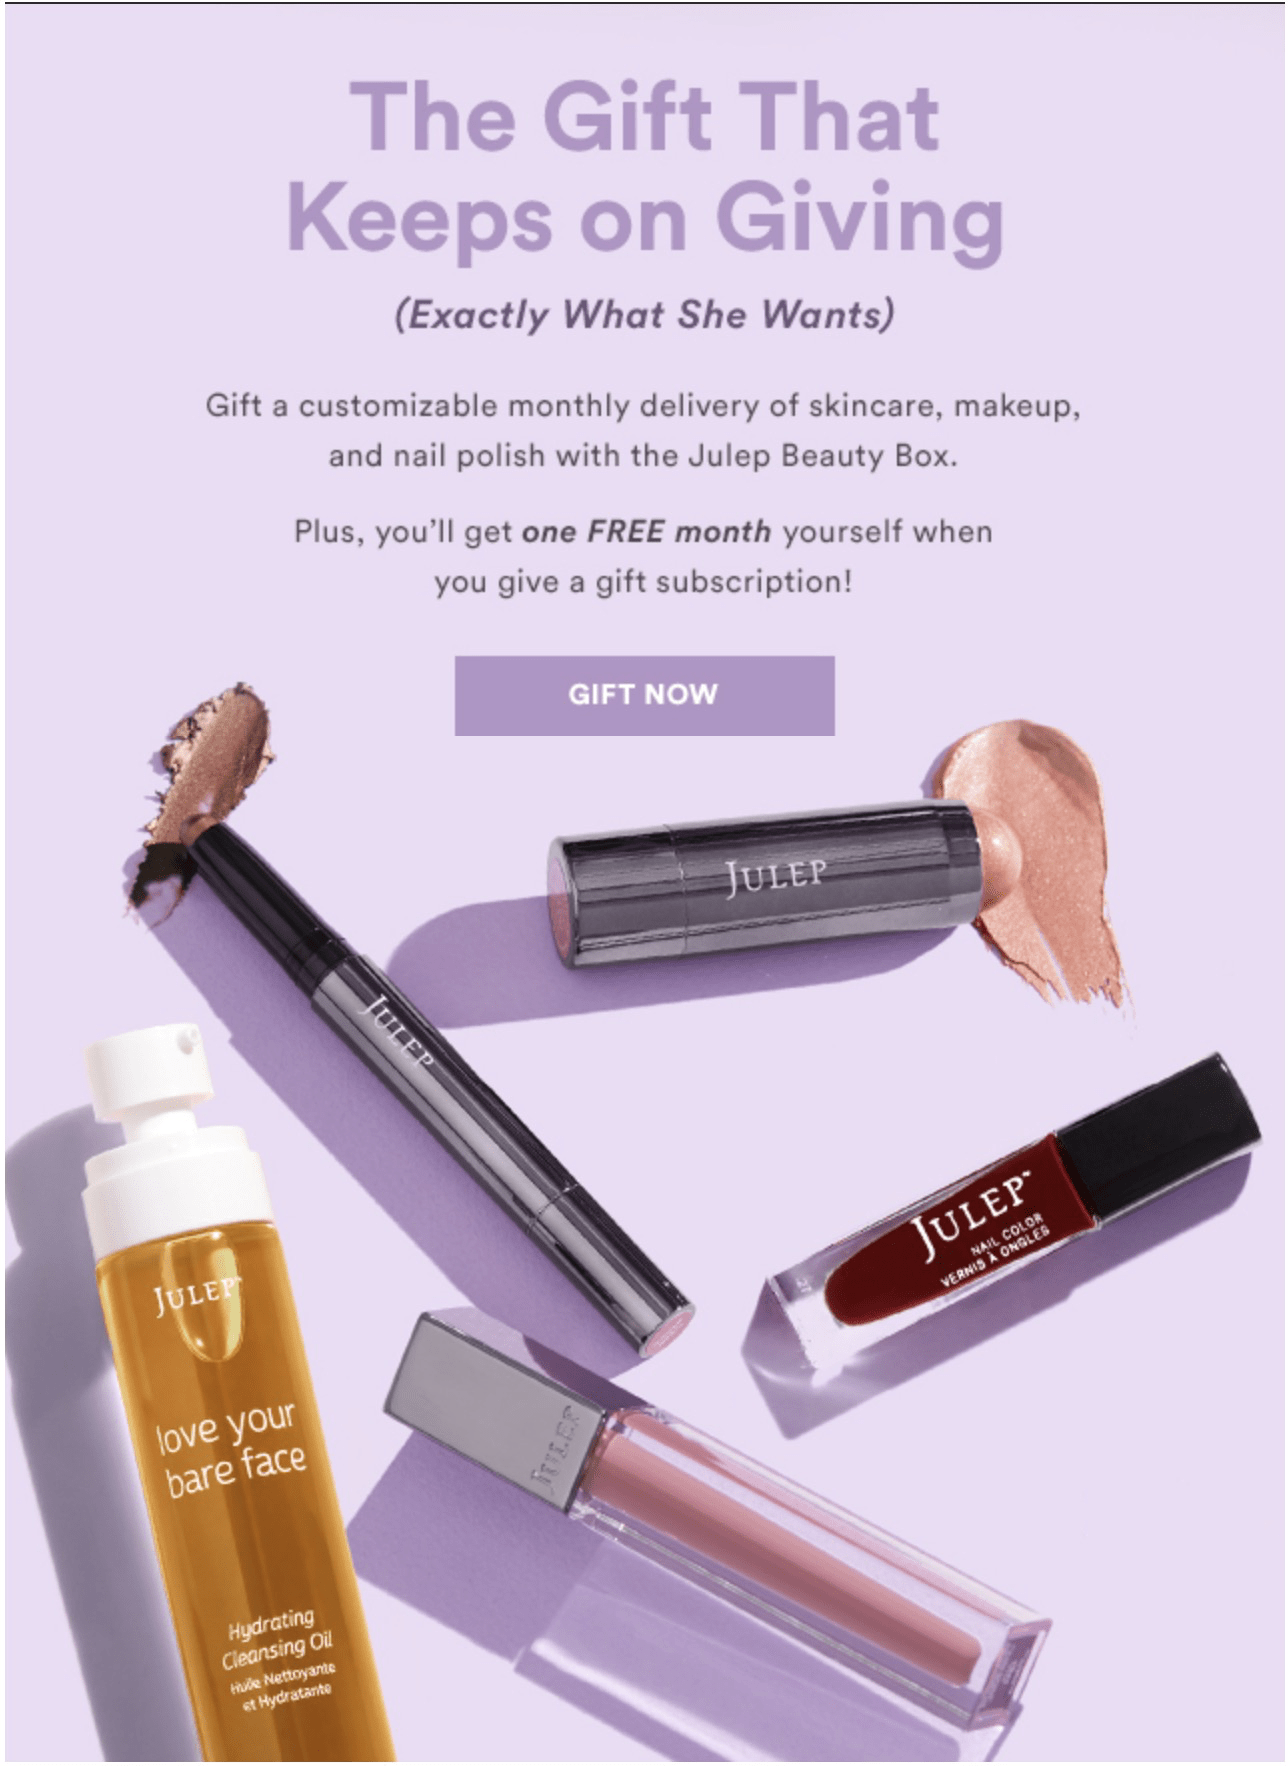 Julep Gift Deal: Give a Gift and Get a FREE Month for You!